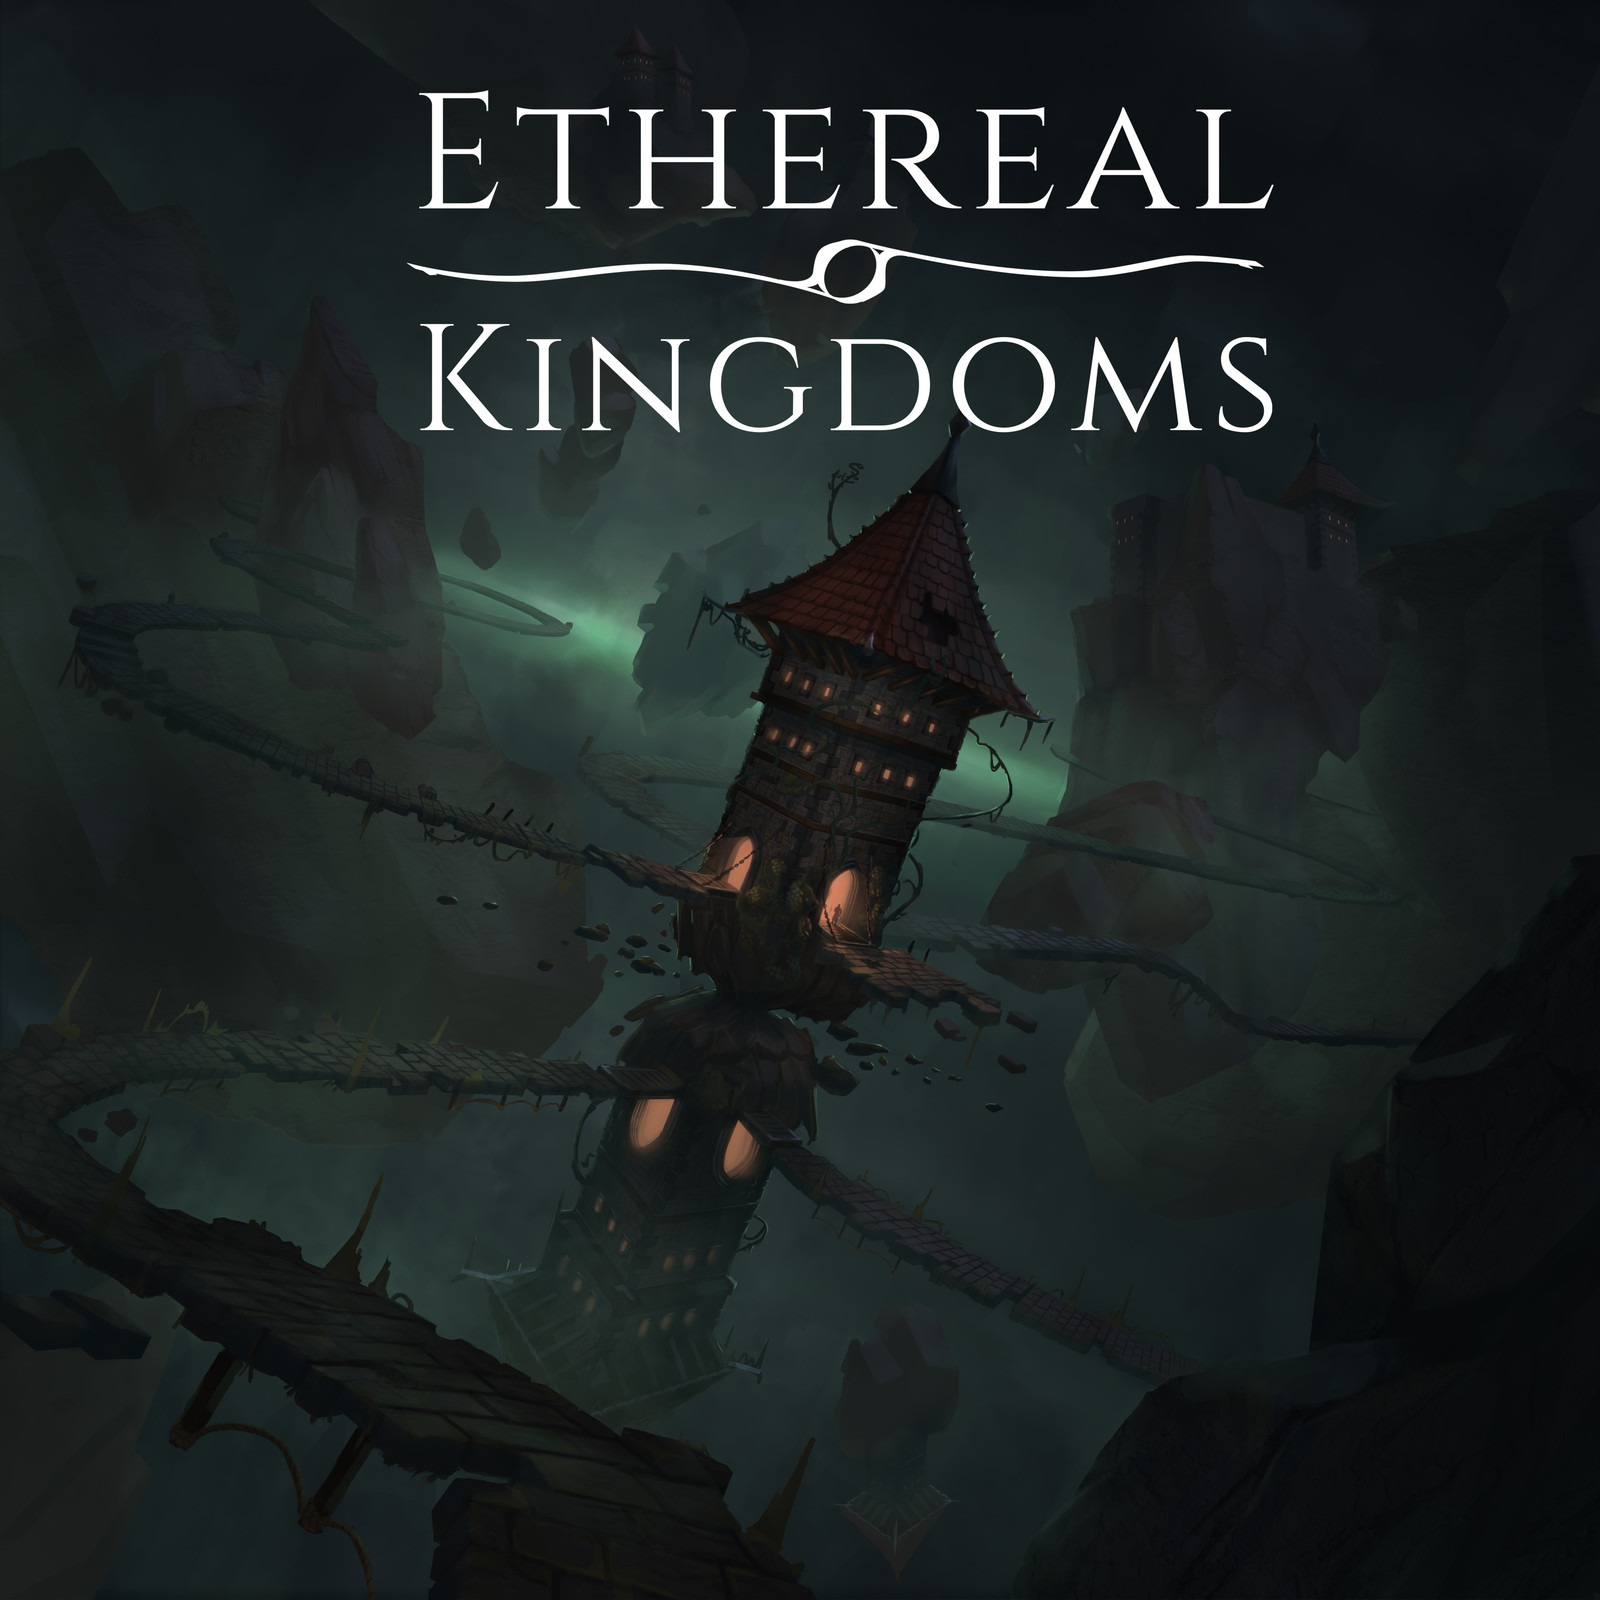 Ethereal Kingdoms